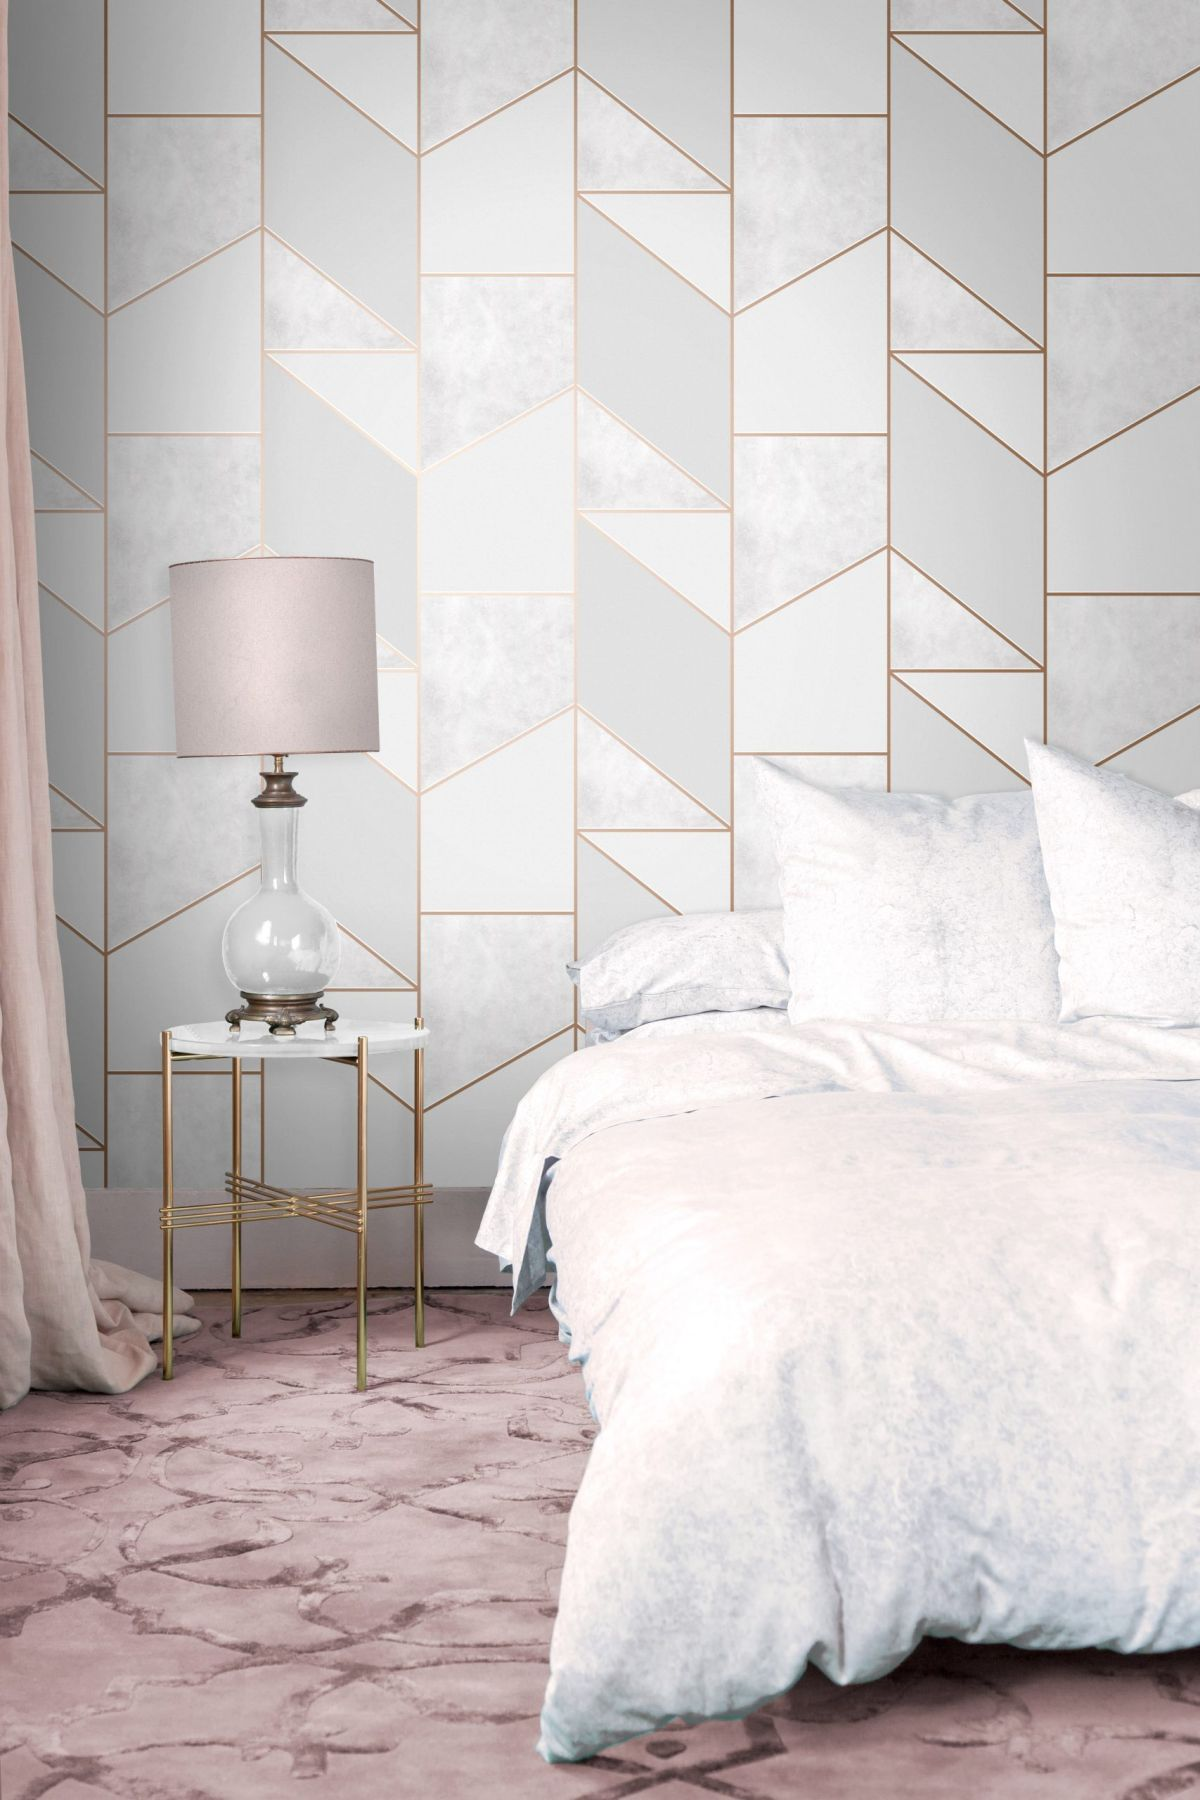 Grey bedroom wallpaper – 12 styles and ideas to inspire